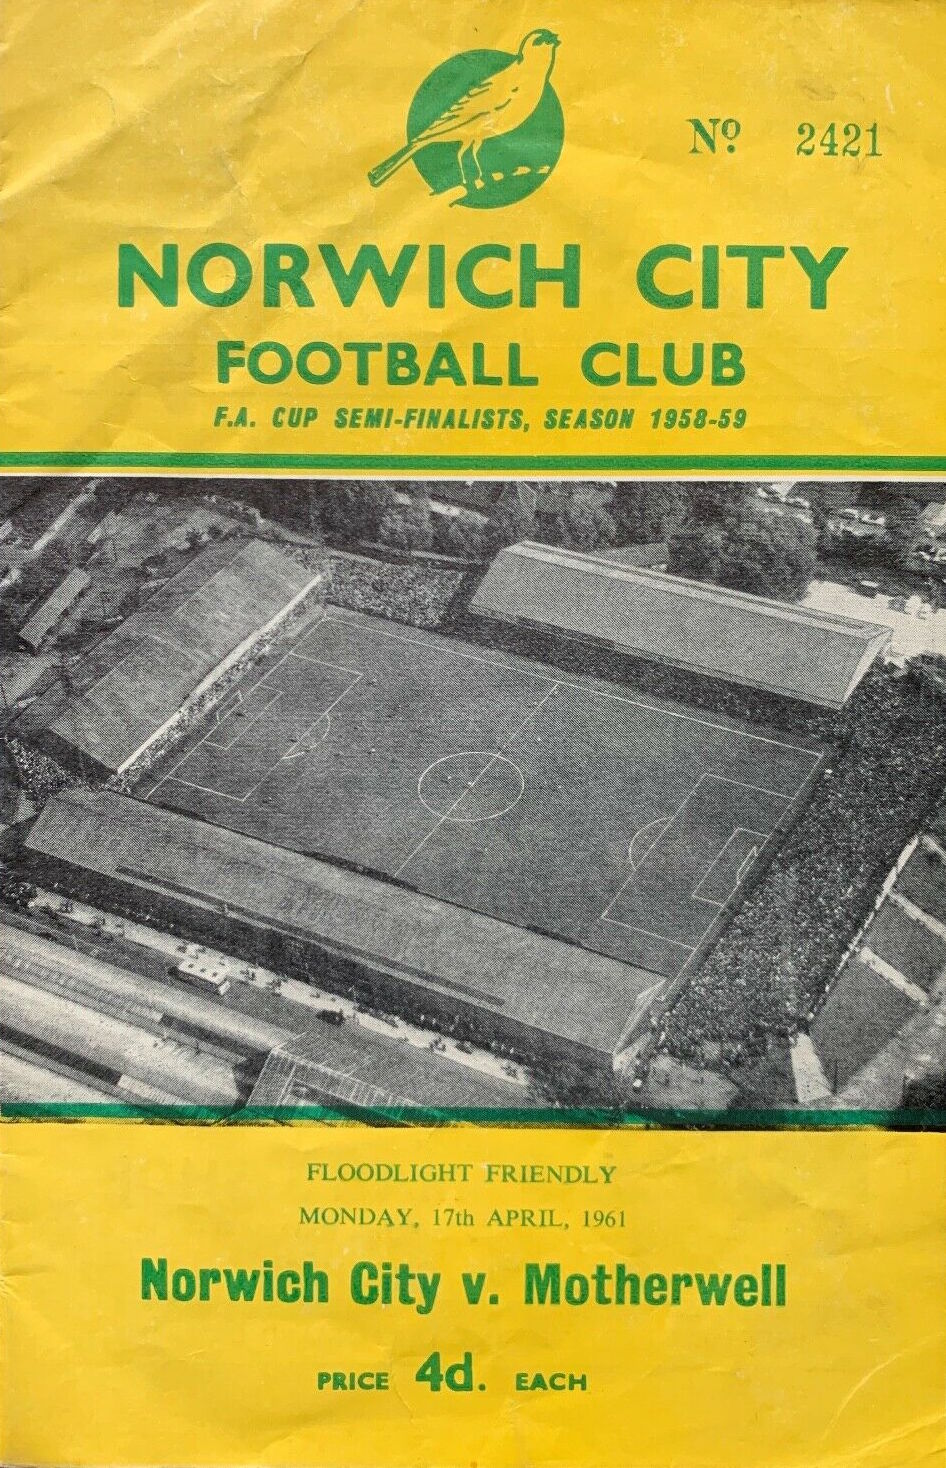 versus Norwich City Programme Cover